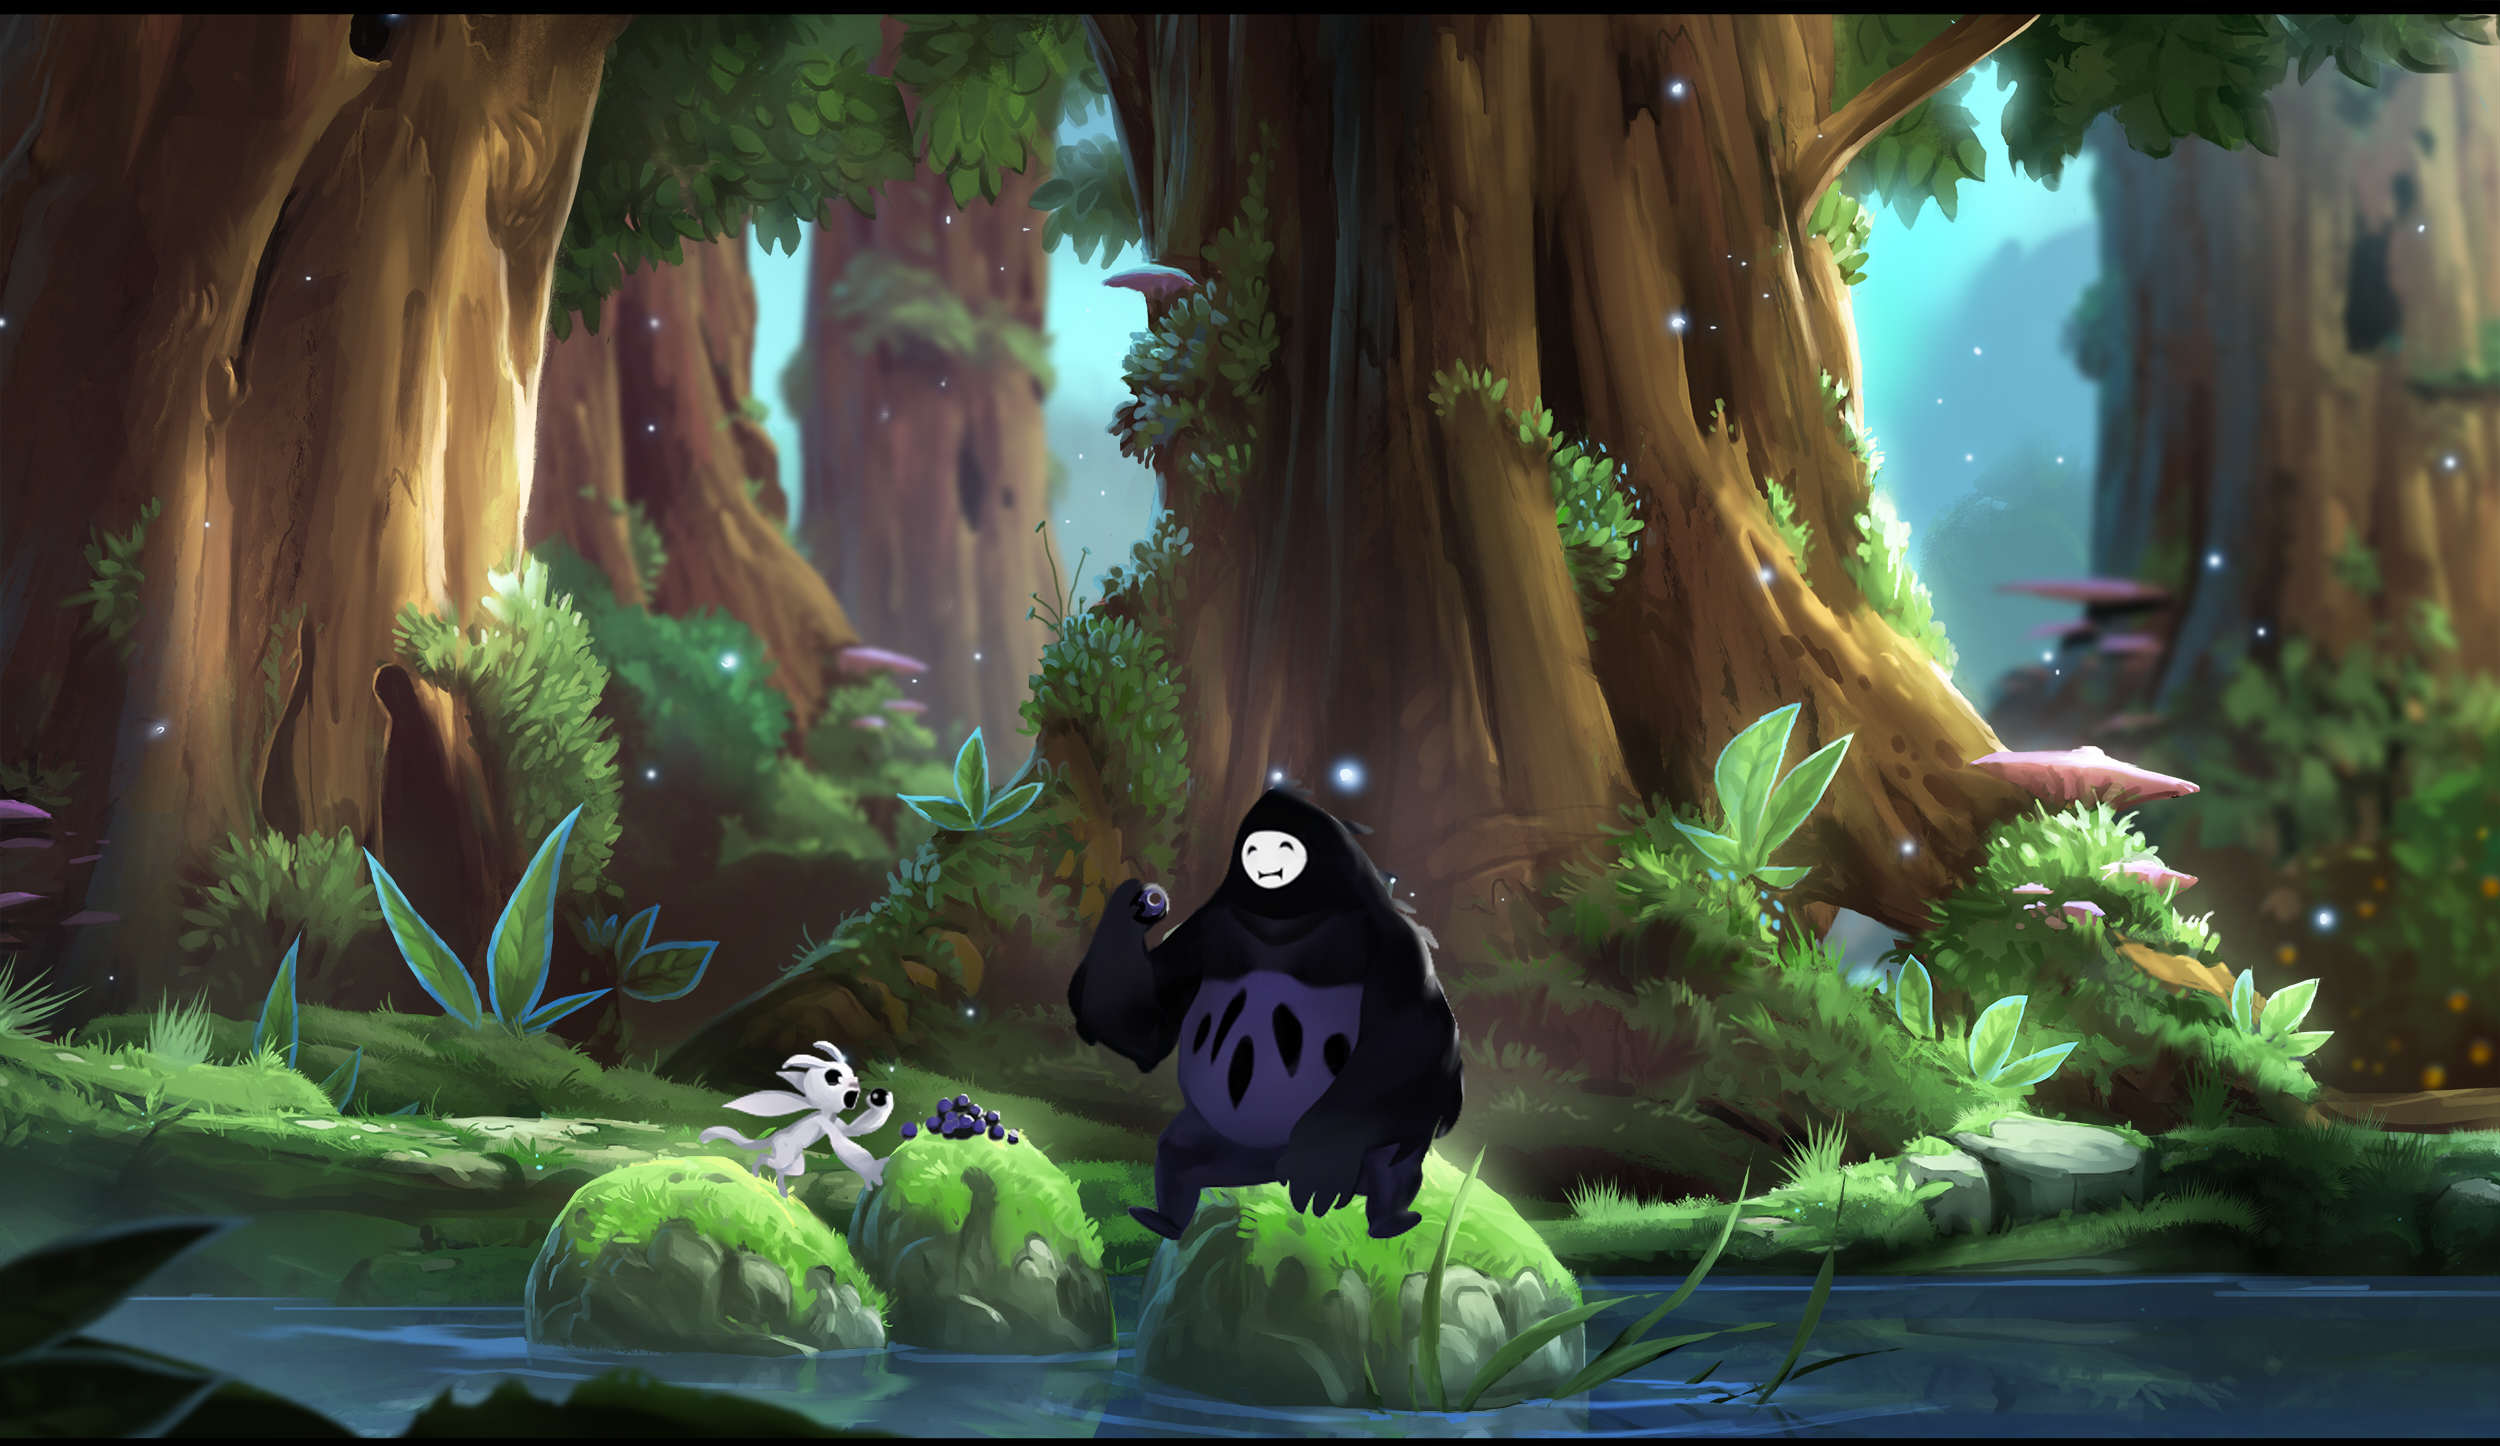 ori and the blind forest Here Are The 2016 DICE Award Winners